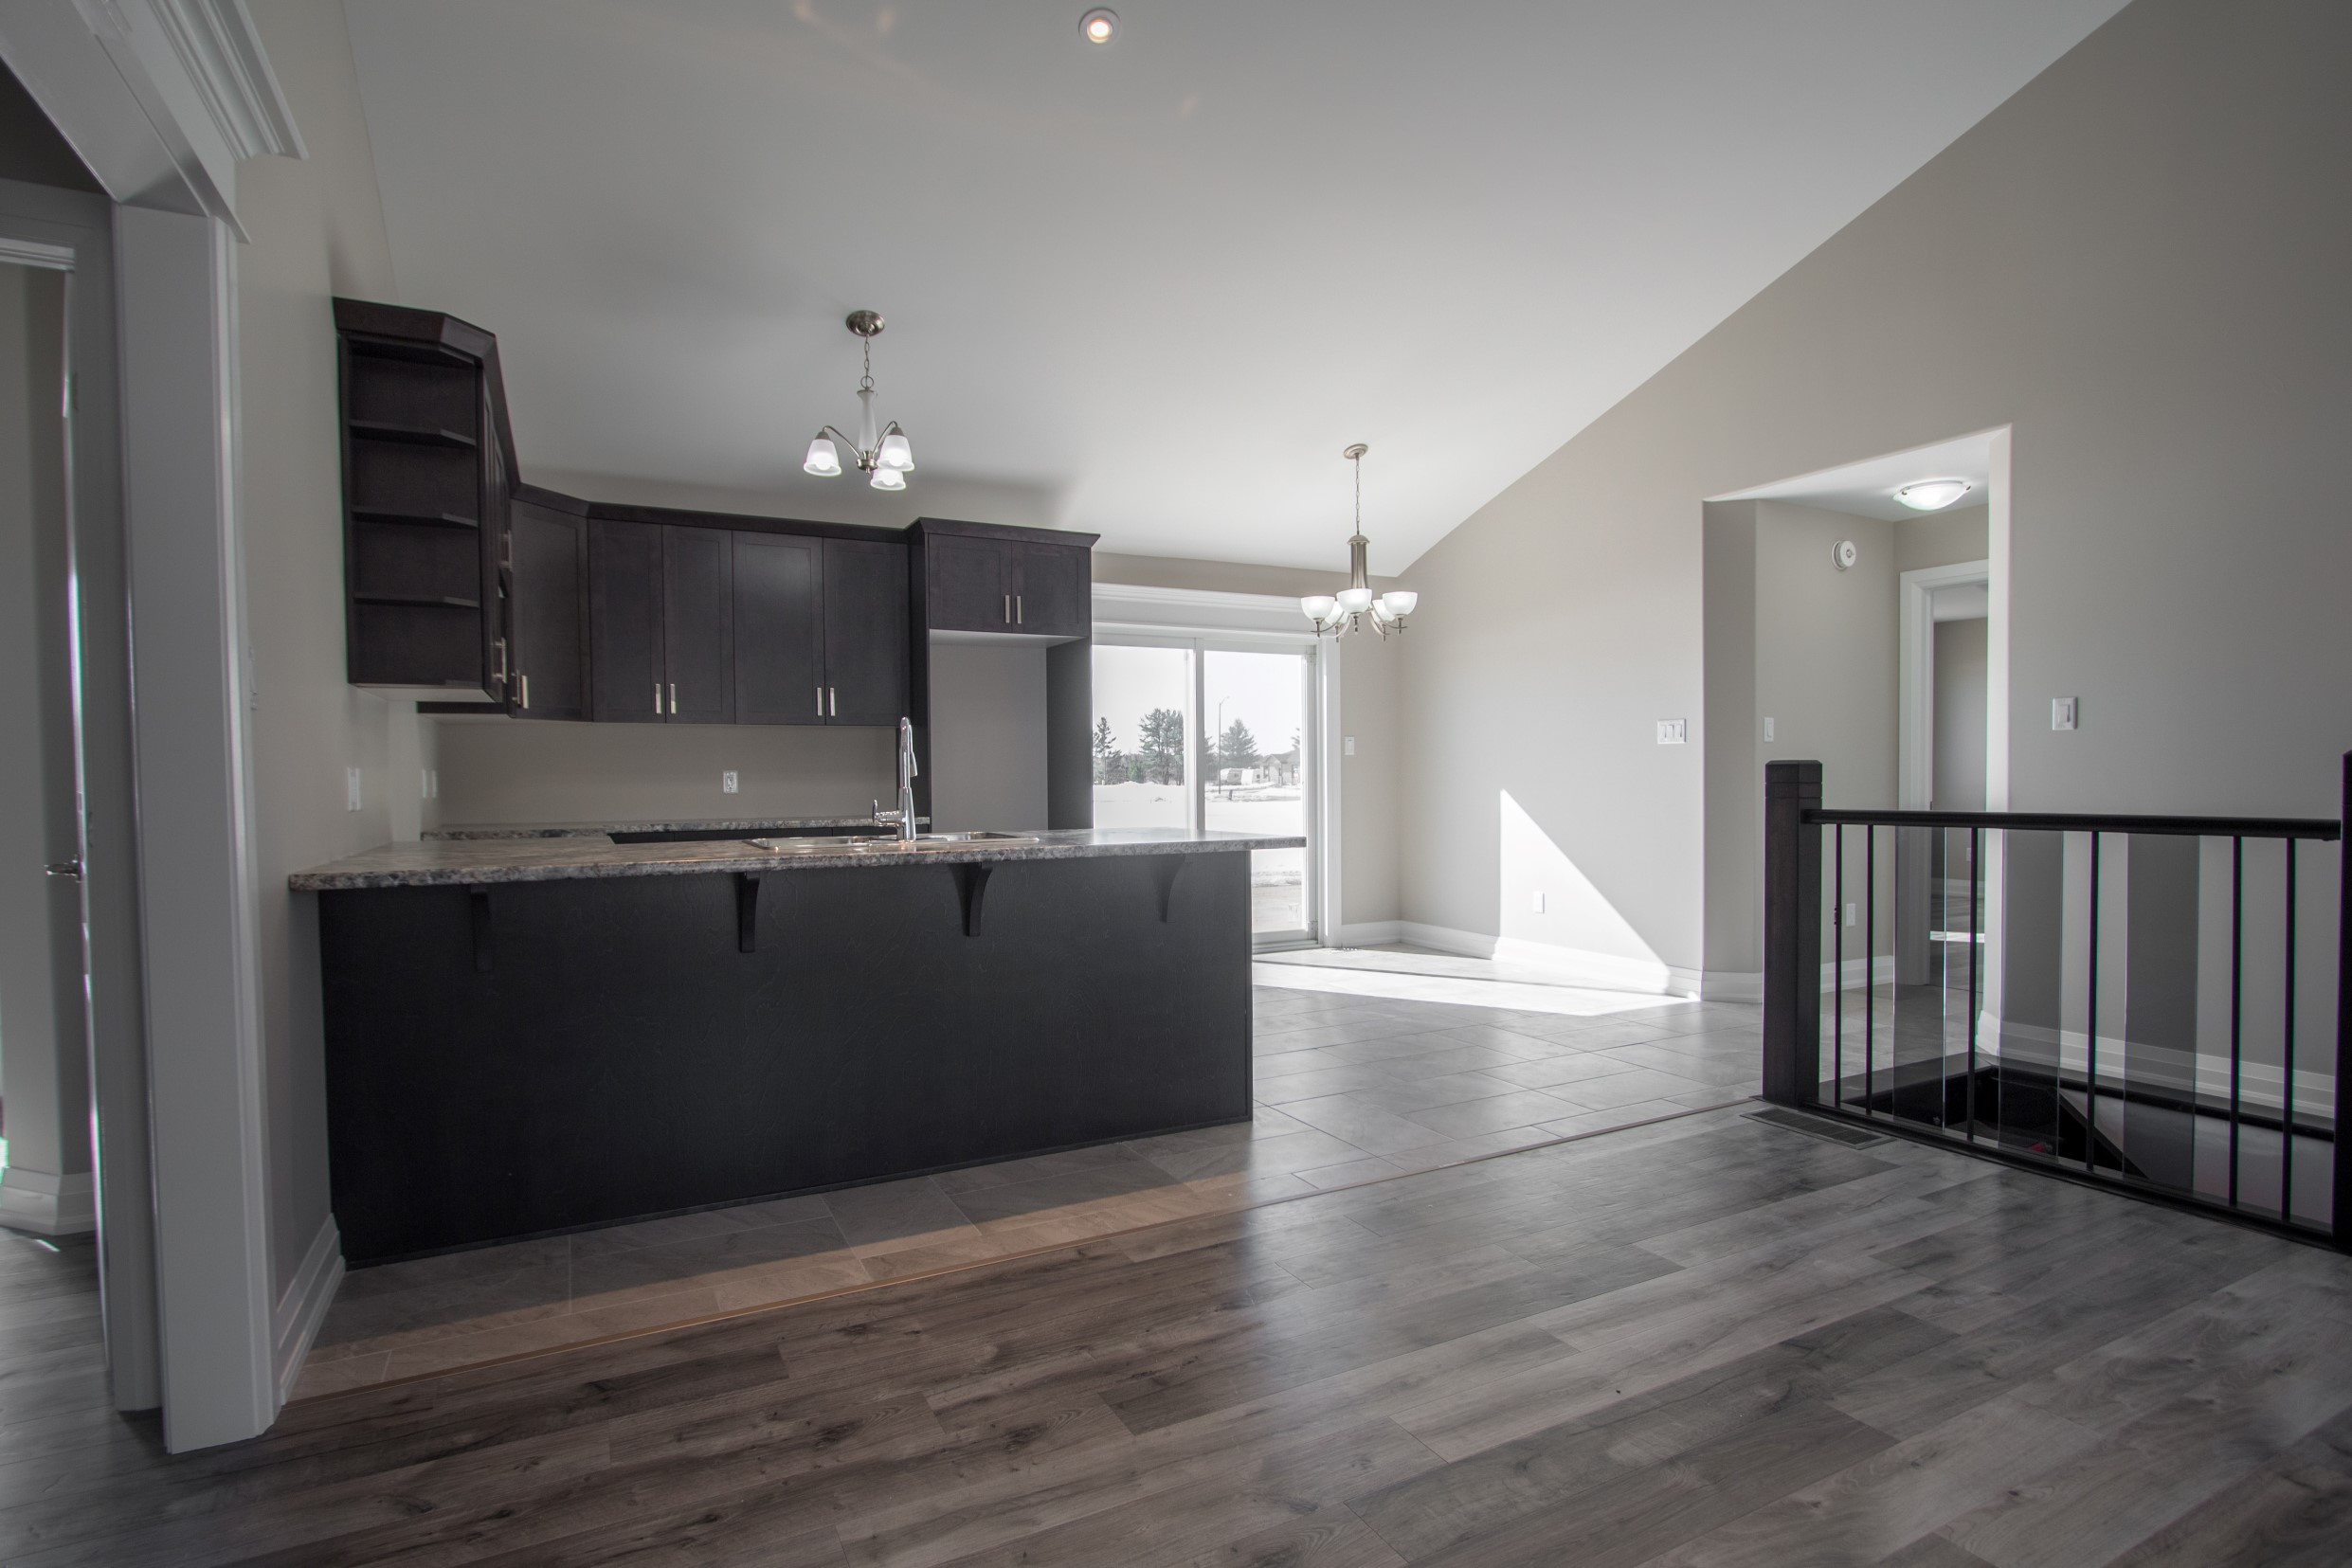 trillium hardwood flooring canada of tri rom homes inc exit ottawa valley realty regarding thestonebrook